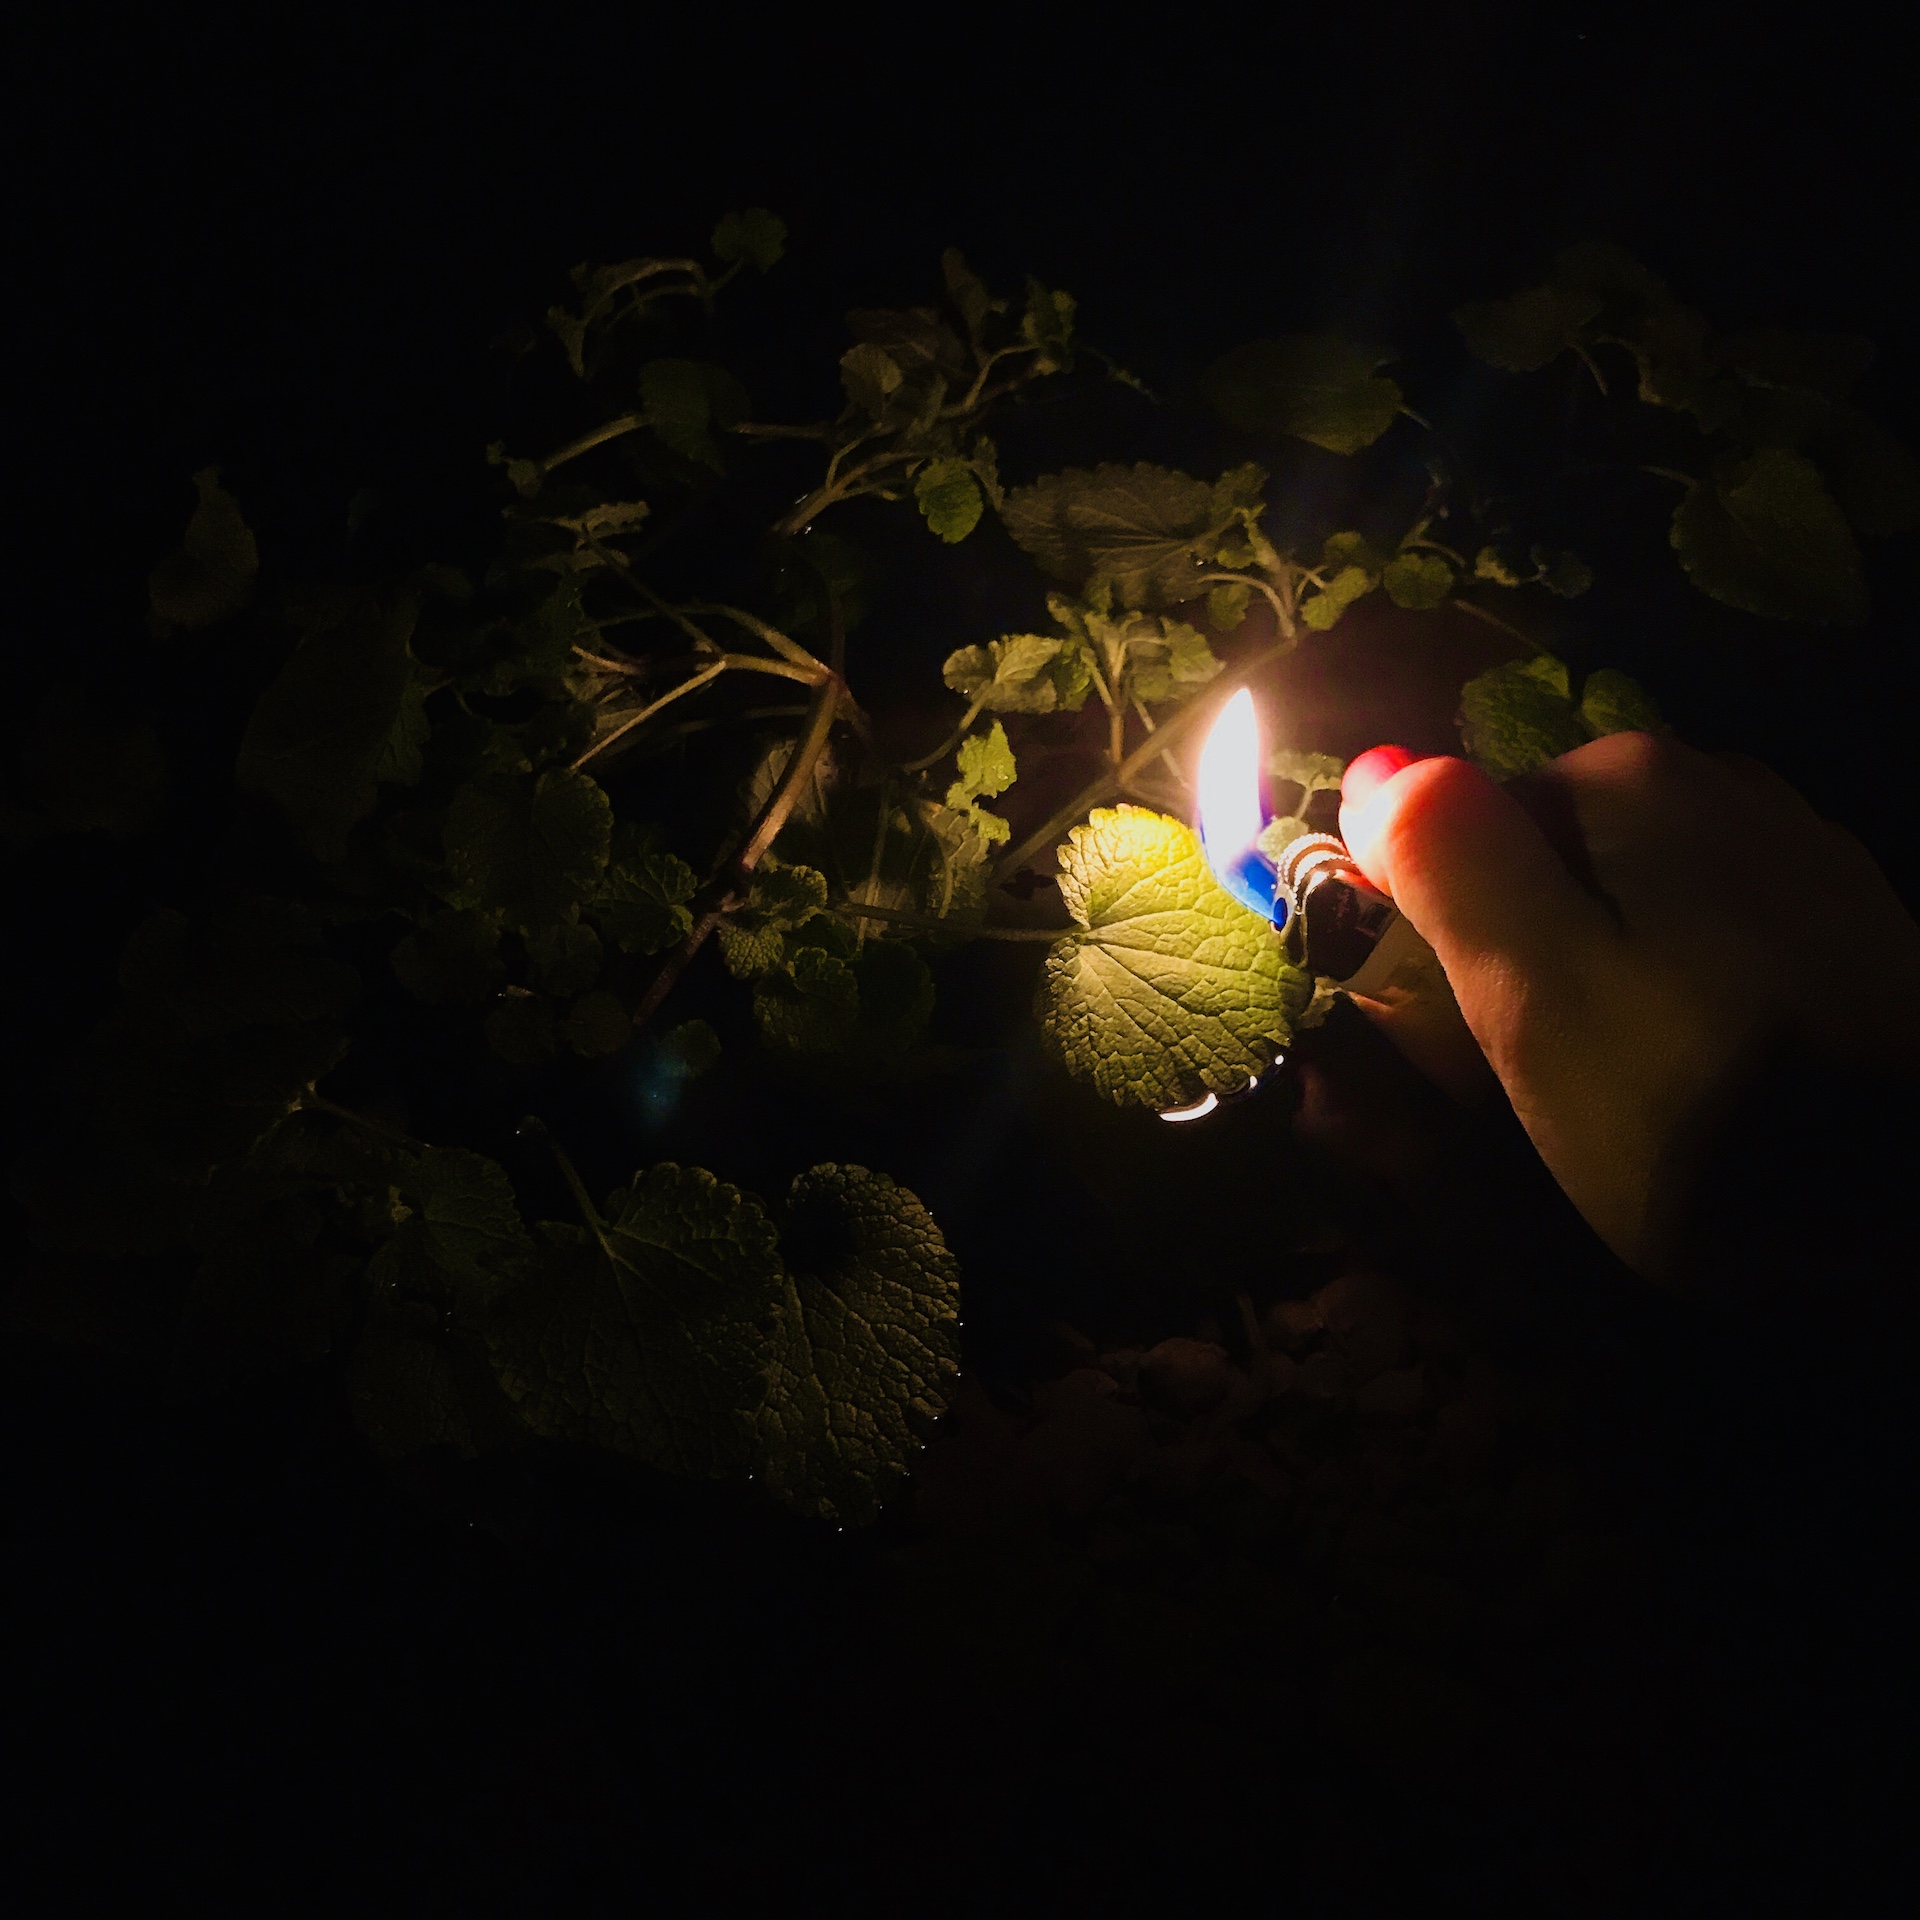 A lit lighter illuminating leaves